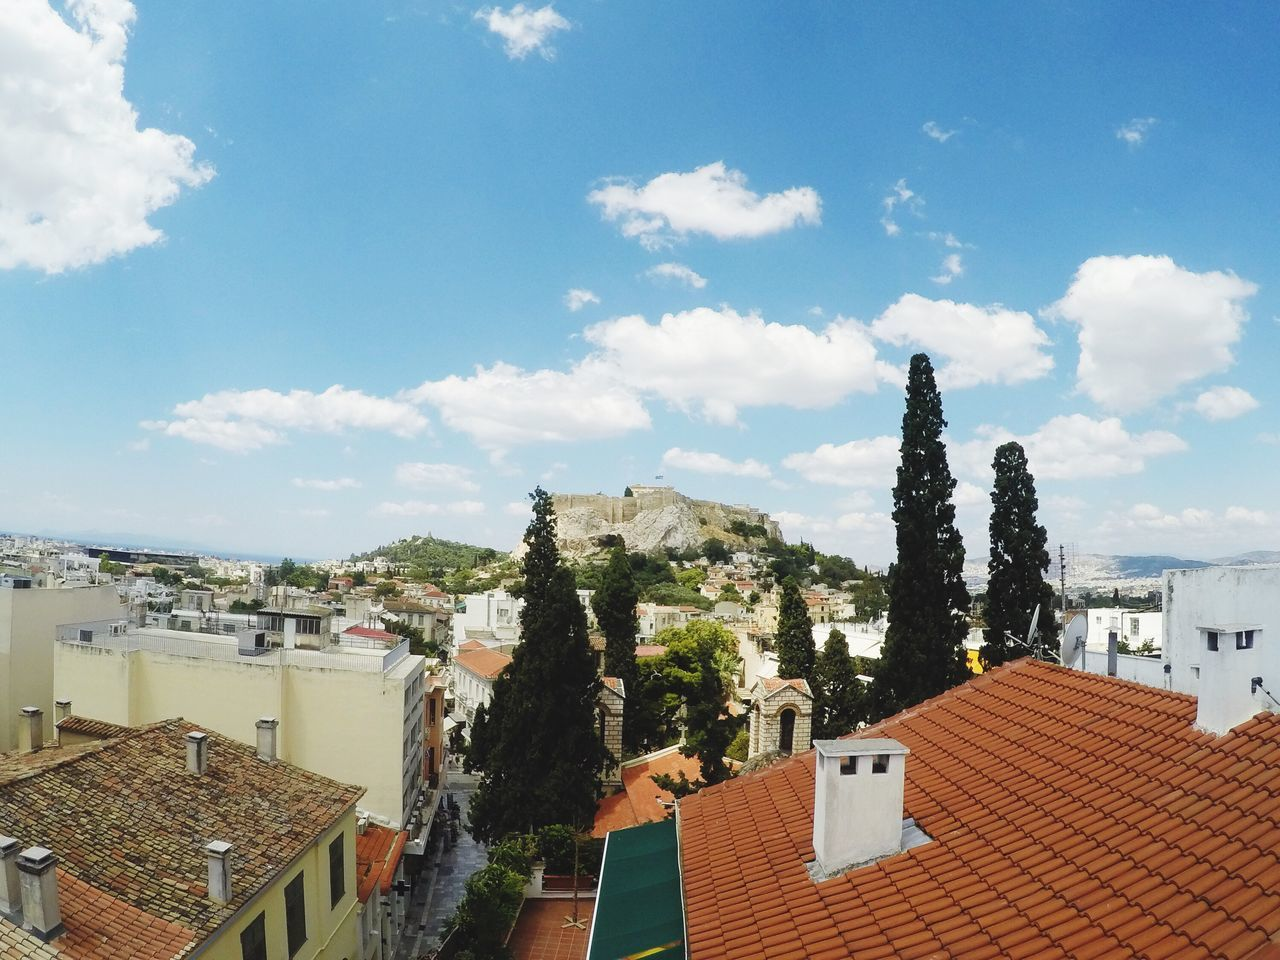 Beautiful stock photos of athens, architecture, built structure, building exterior, sky